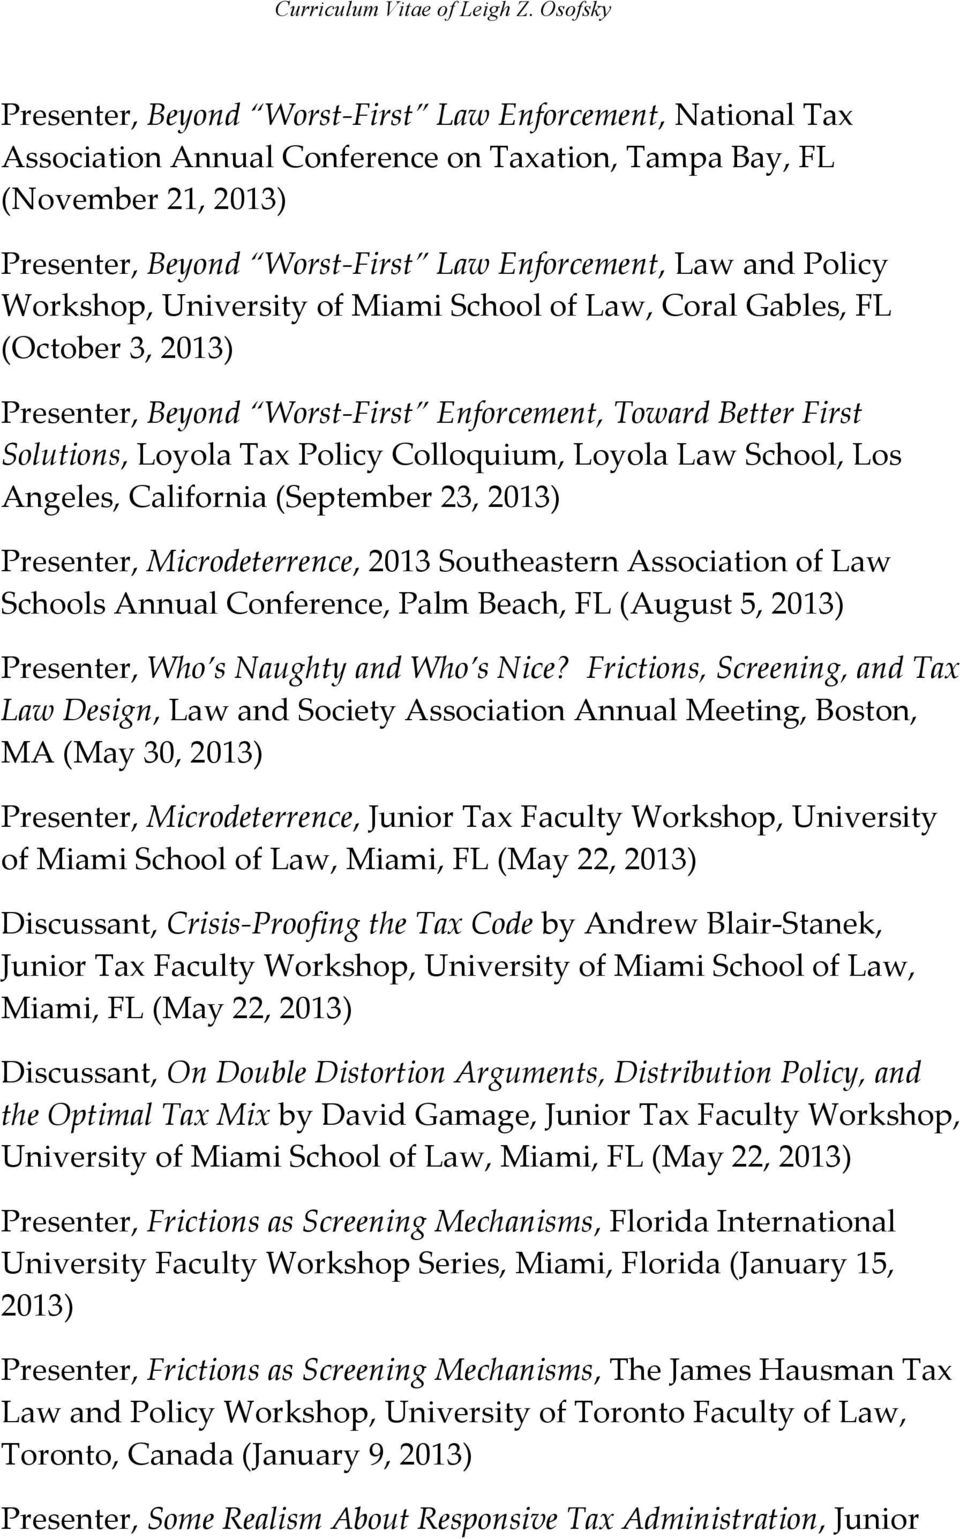 Law School, Los Angeles, California (September 23, 2013) Presenter, Microdeterrence, 2013 Southeastern Association of Law Schools Annual Conference, Palm Beach, FL (August 5, 2013) Presenter, Who s